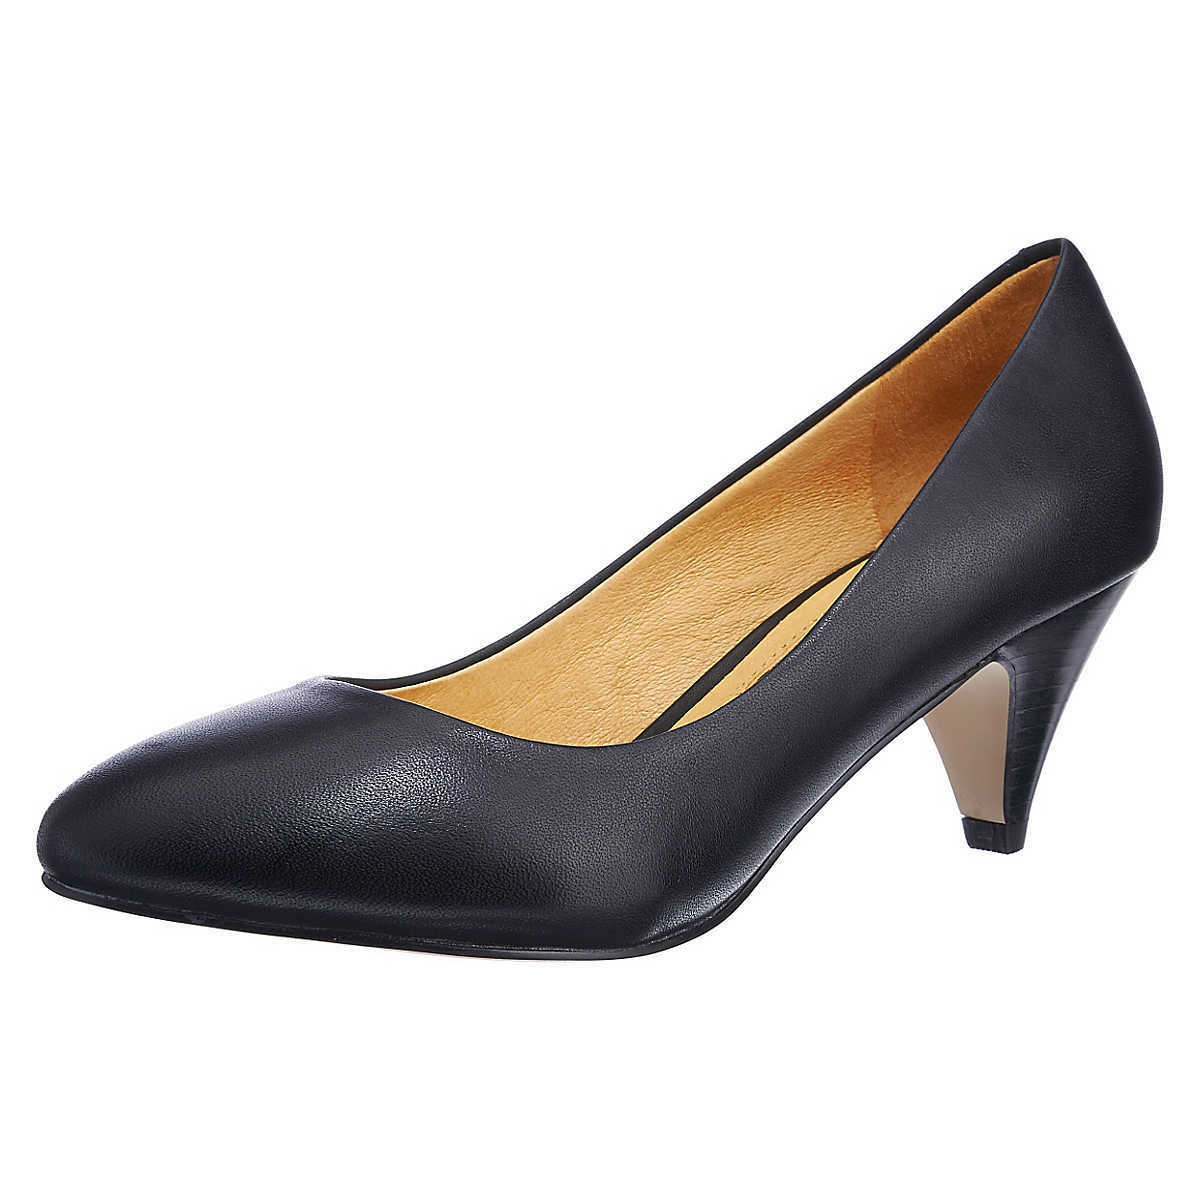 BUFFALO LONDON Damen Pumps Damenschuhe, schwarz, Gr. 37